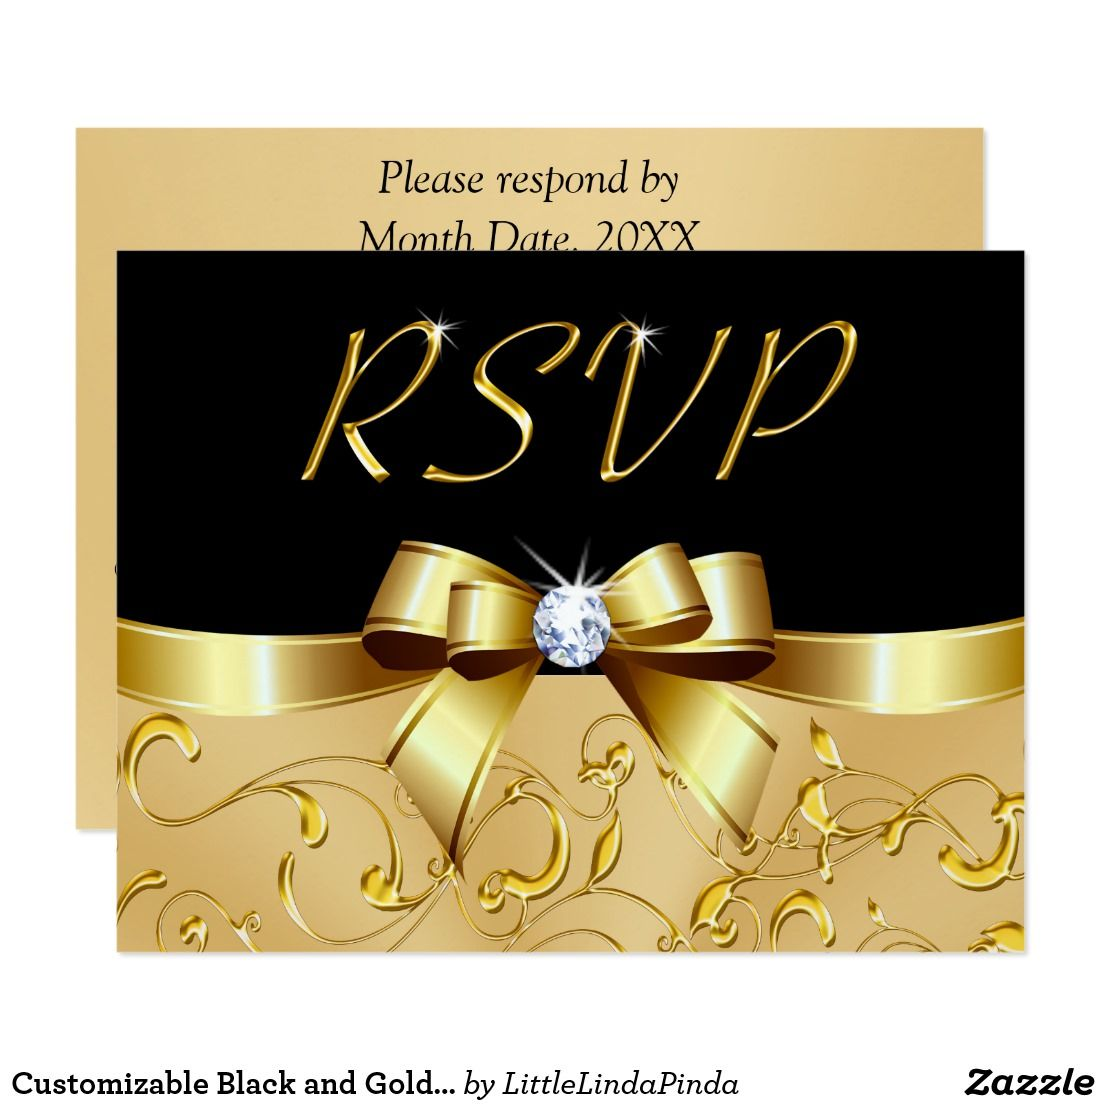 Customizable Black And Gold Rsvp Cards Your Text Zazzle Com Rsvp Card Response Cards Rsvp